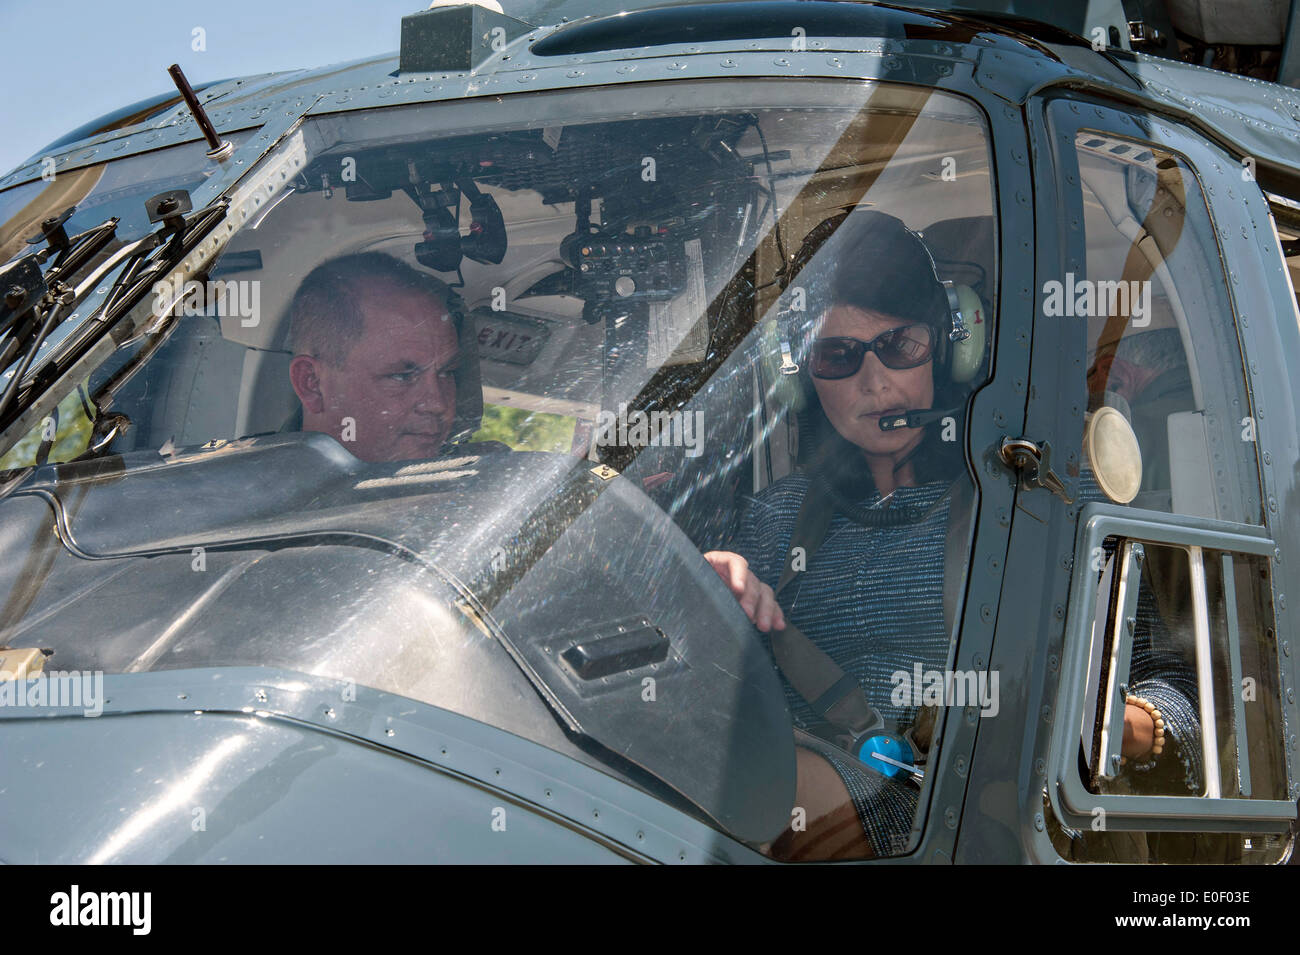 South Carolina Governor Nikki Haley in a helicopter as she tours the Savannah River nuclear site April 21, 2014 in Aiken, SC. - Stock Image